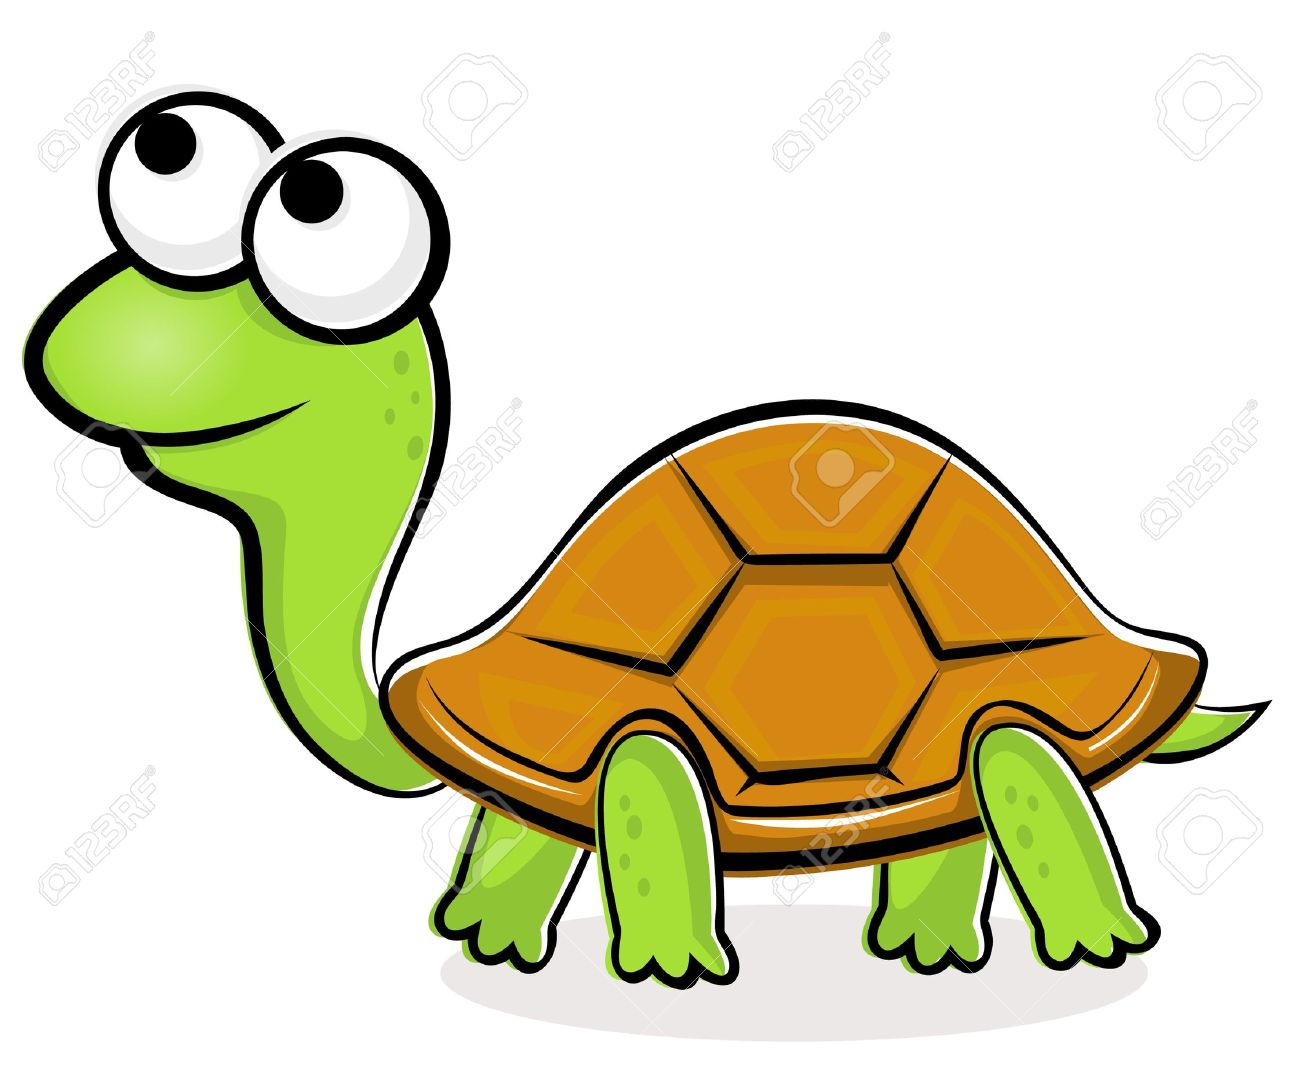 Tortoise clipart - Clipground